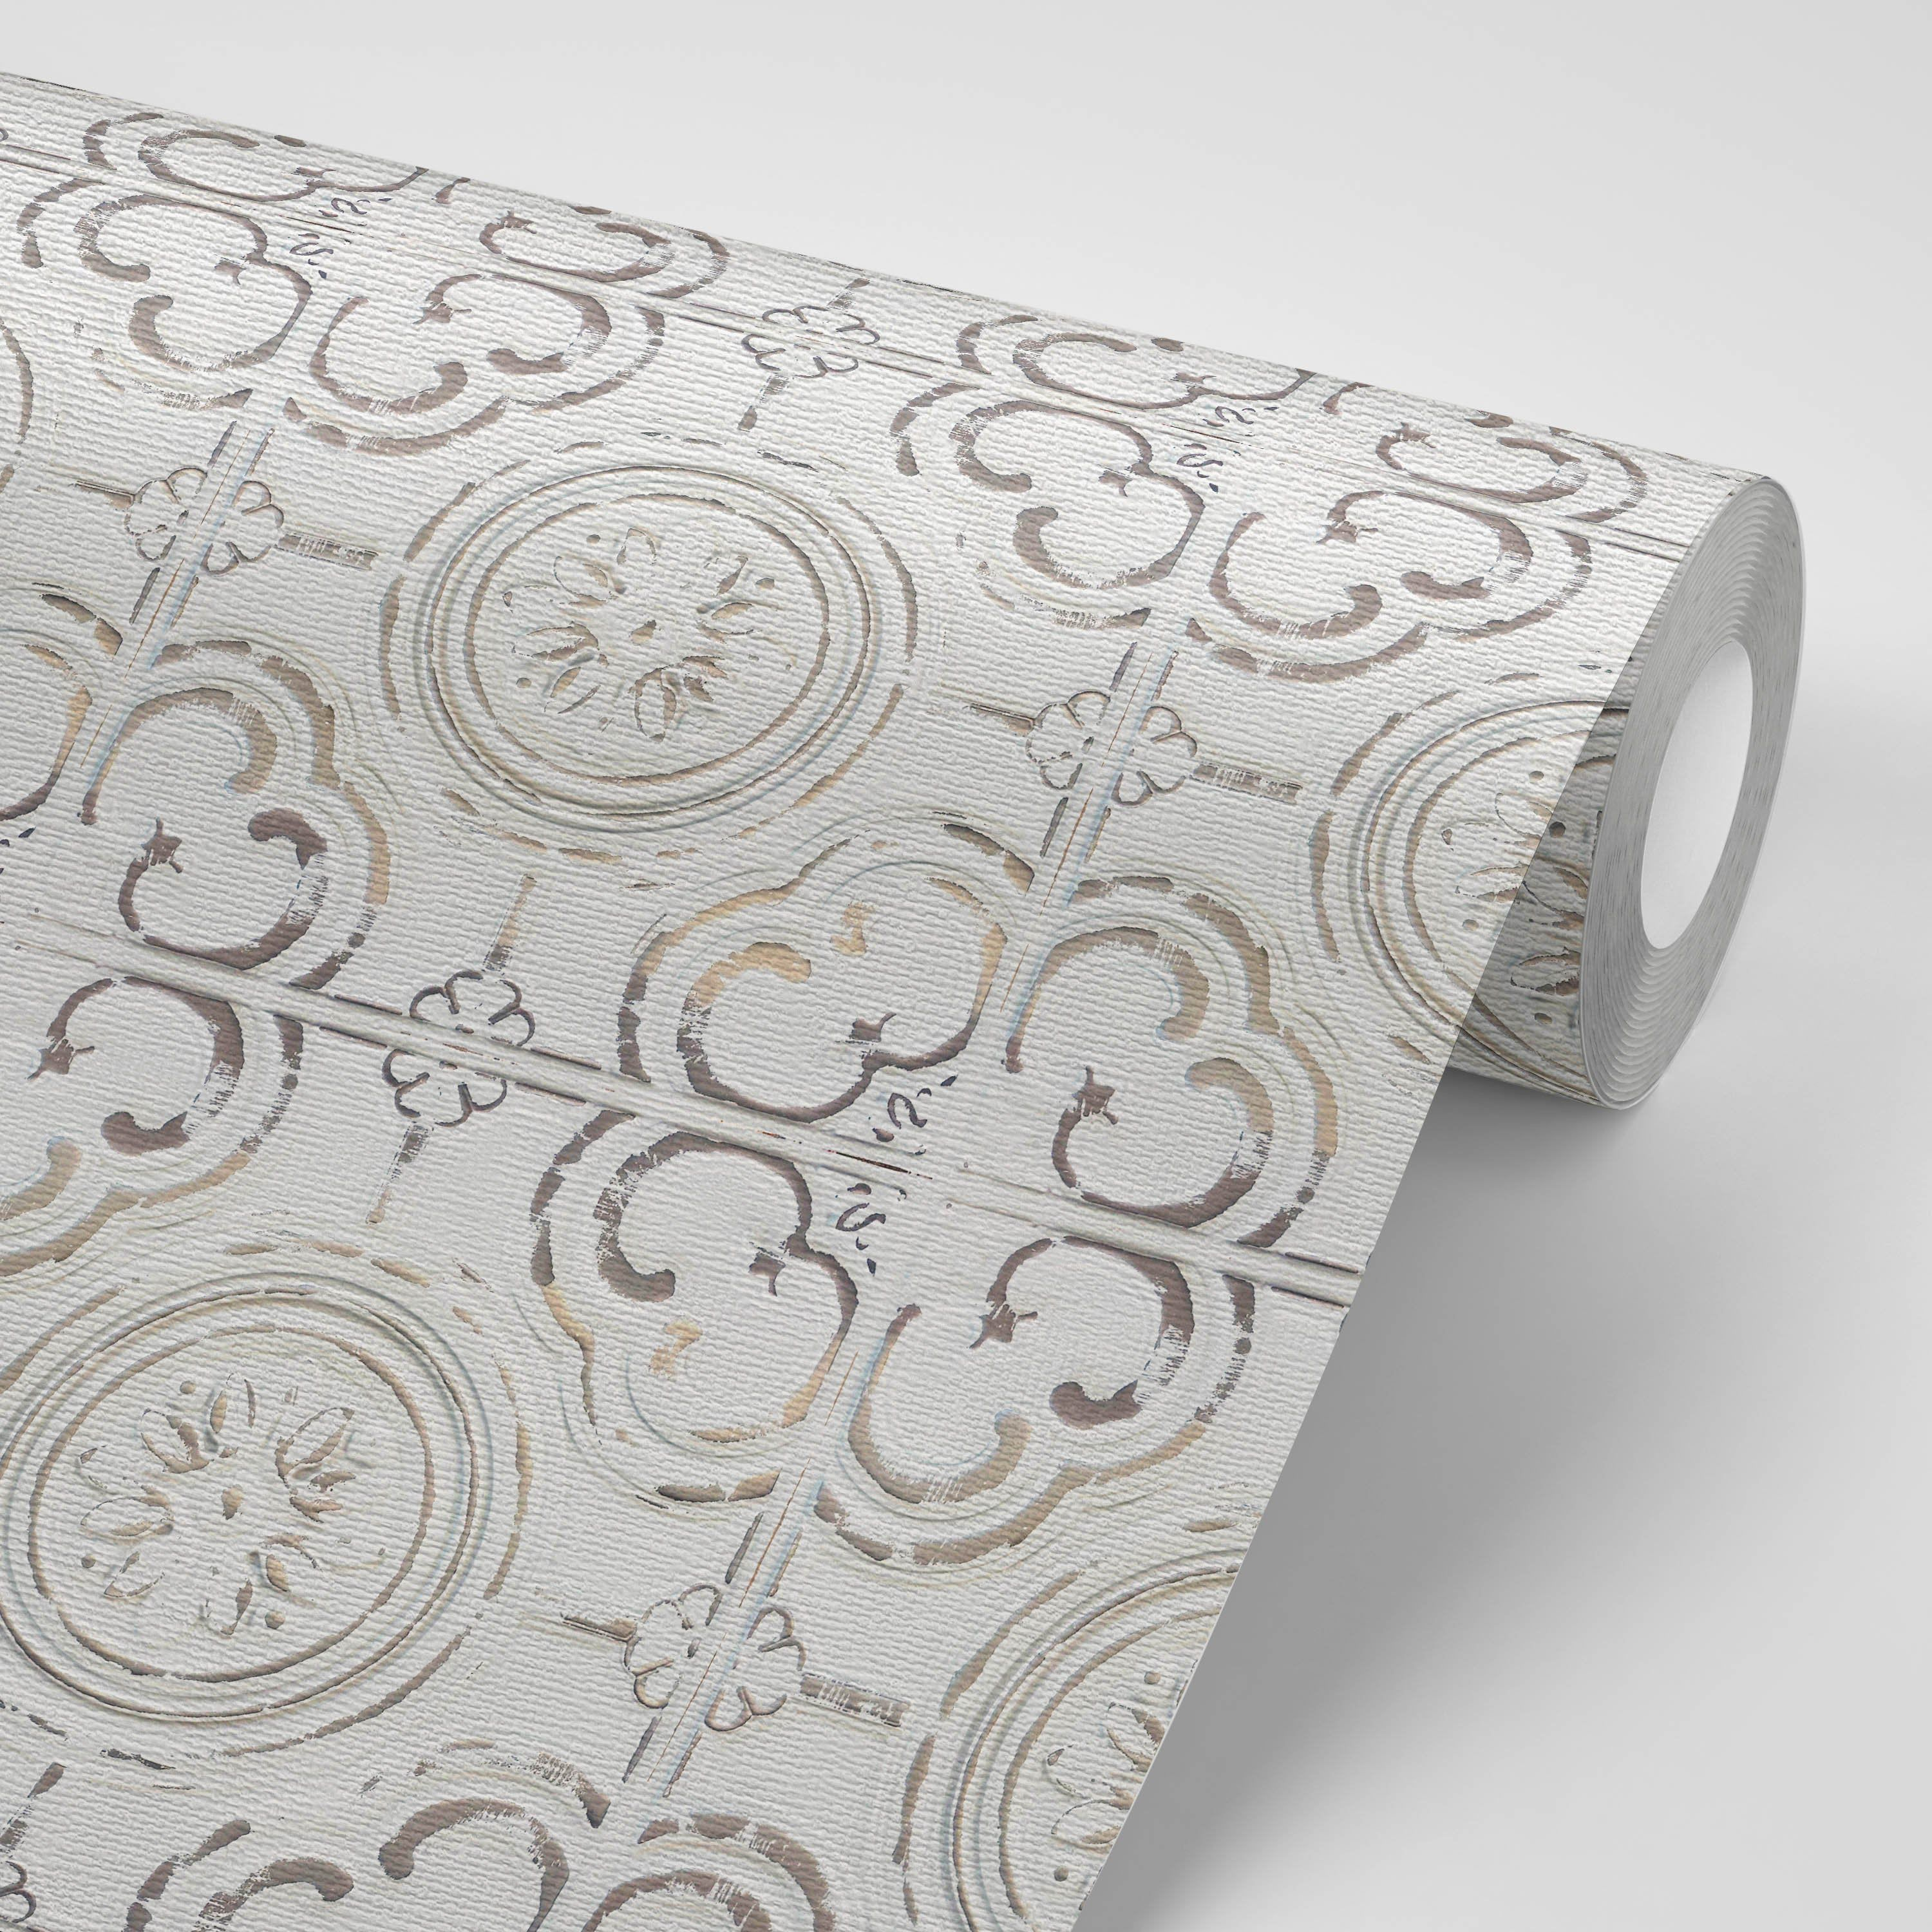 Faux Ceiling Tile Removeable Wallpaper Peel And Stick Wallpaper Sticker Removable Repositionable Wallpaper Ceiling Wallpaper Stickers Peel And Stick Wallpaper